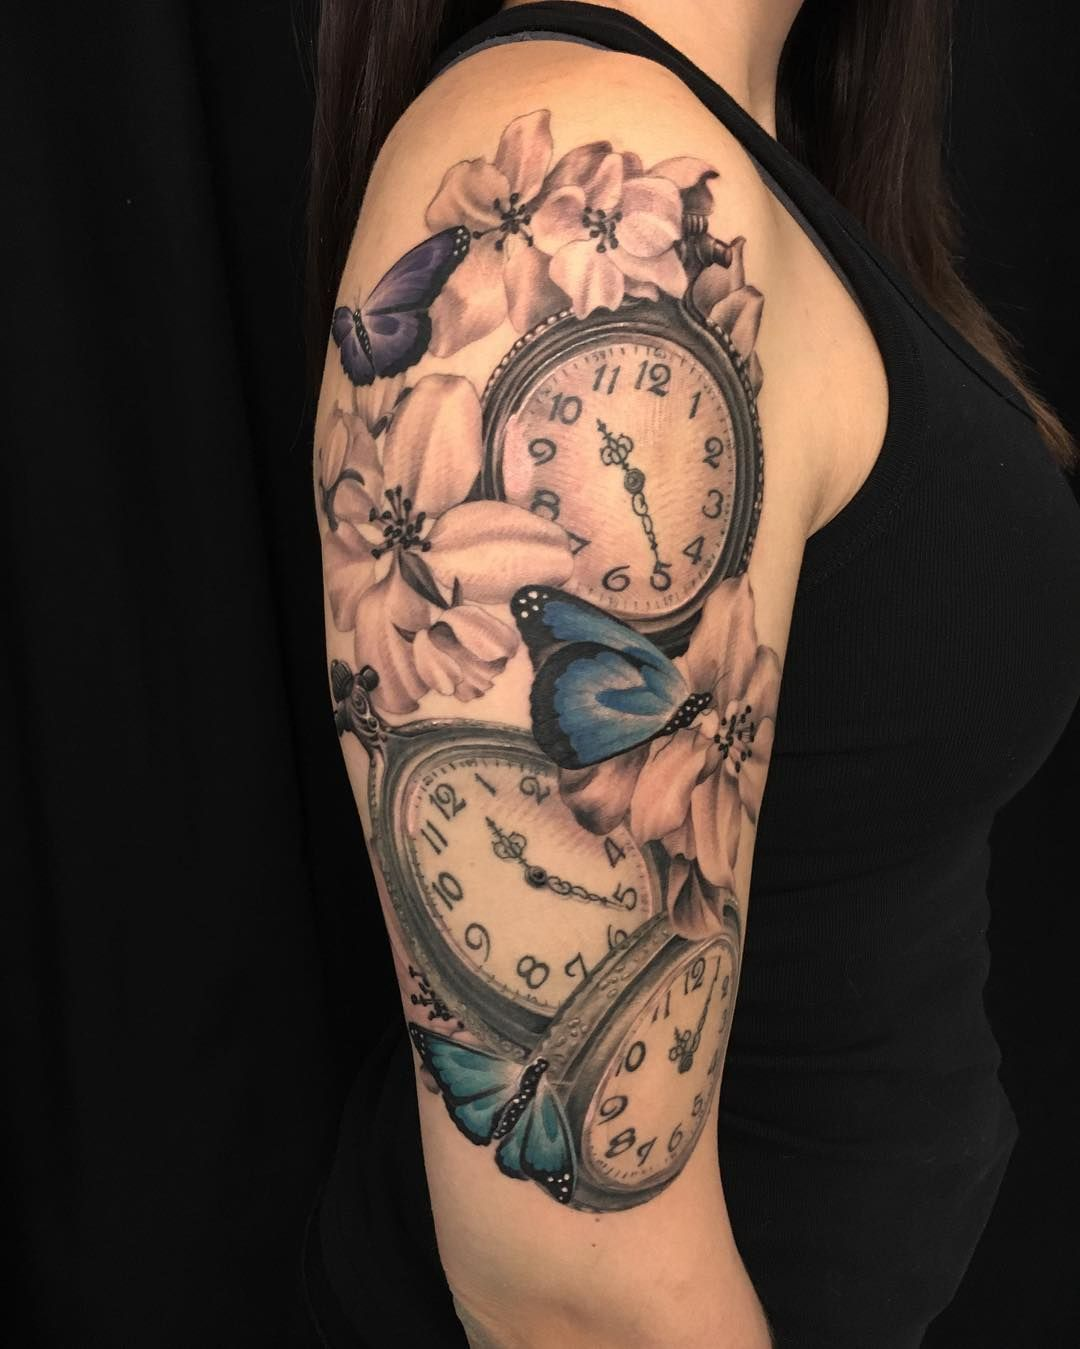 80 Timeless Pocket Watch Tattoo Ideas - A Classic and ...